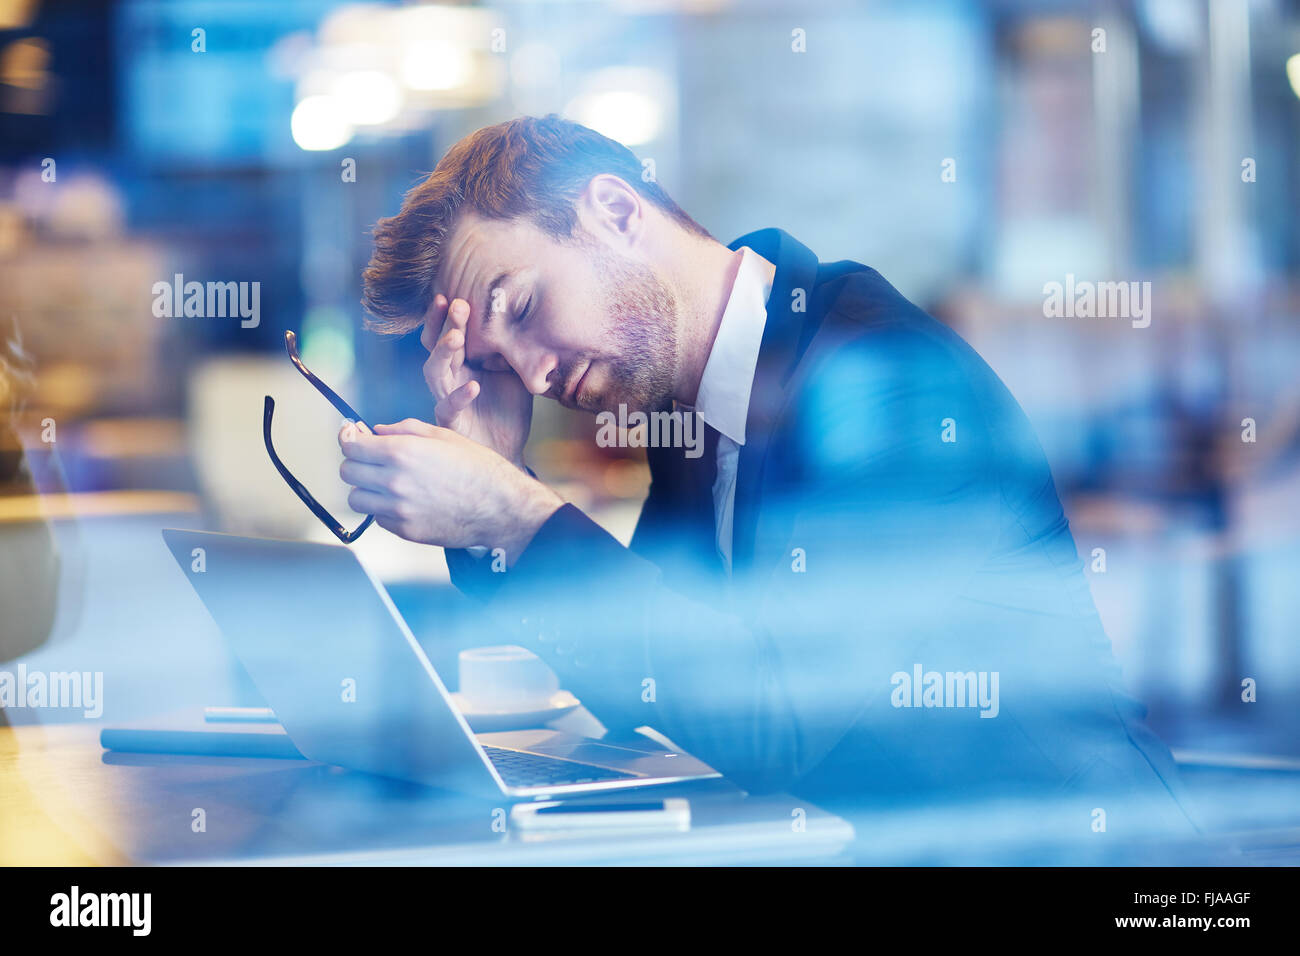 Tired employee touching his forehead - Stock Image